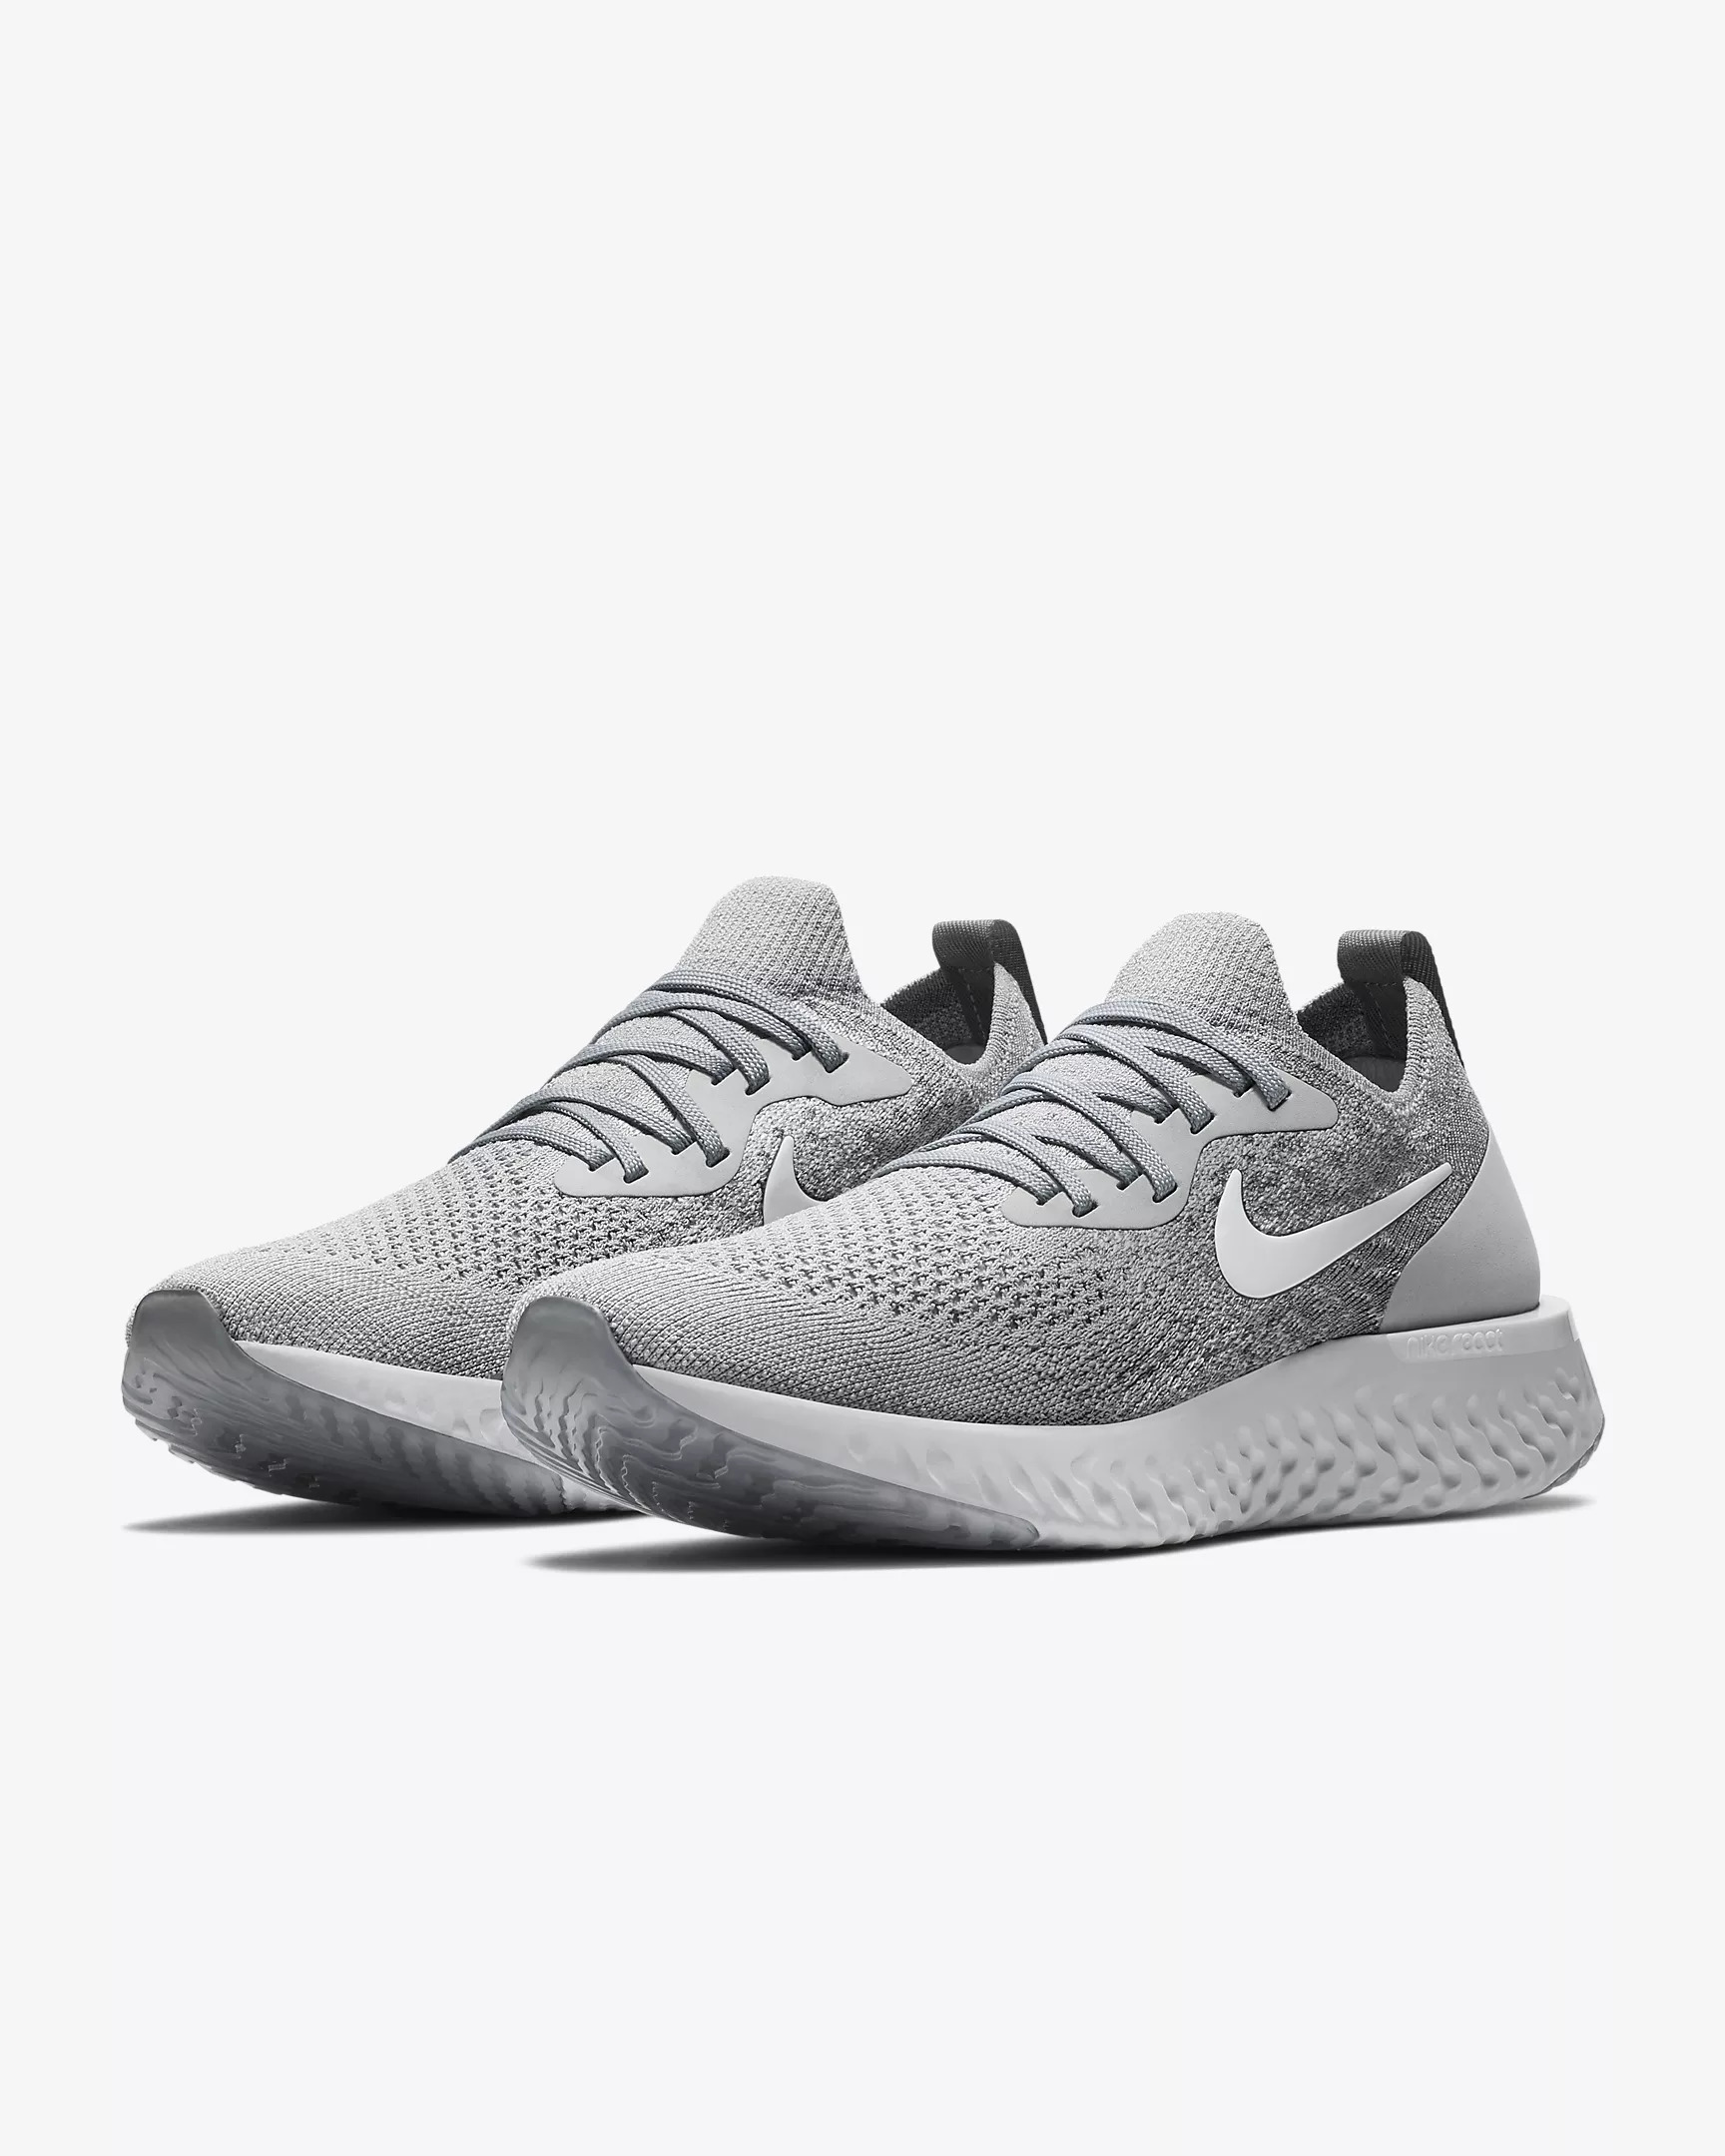 9c59105f5fe33 Feast Your Eyes on 3 New Nike Epic React Flyknit Colorways